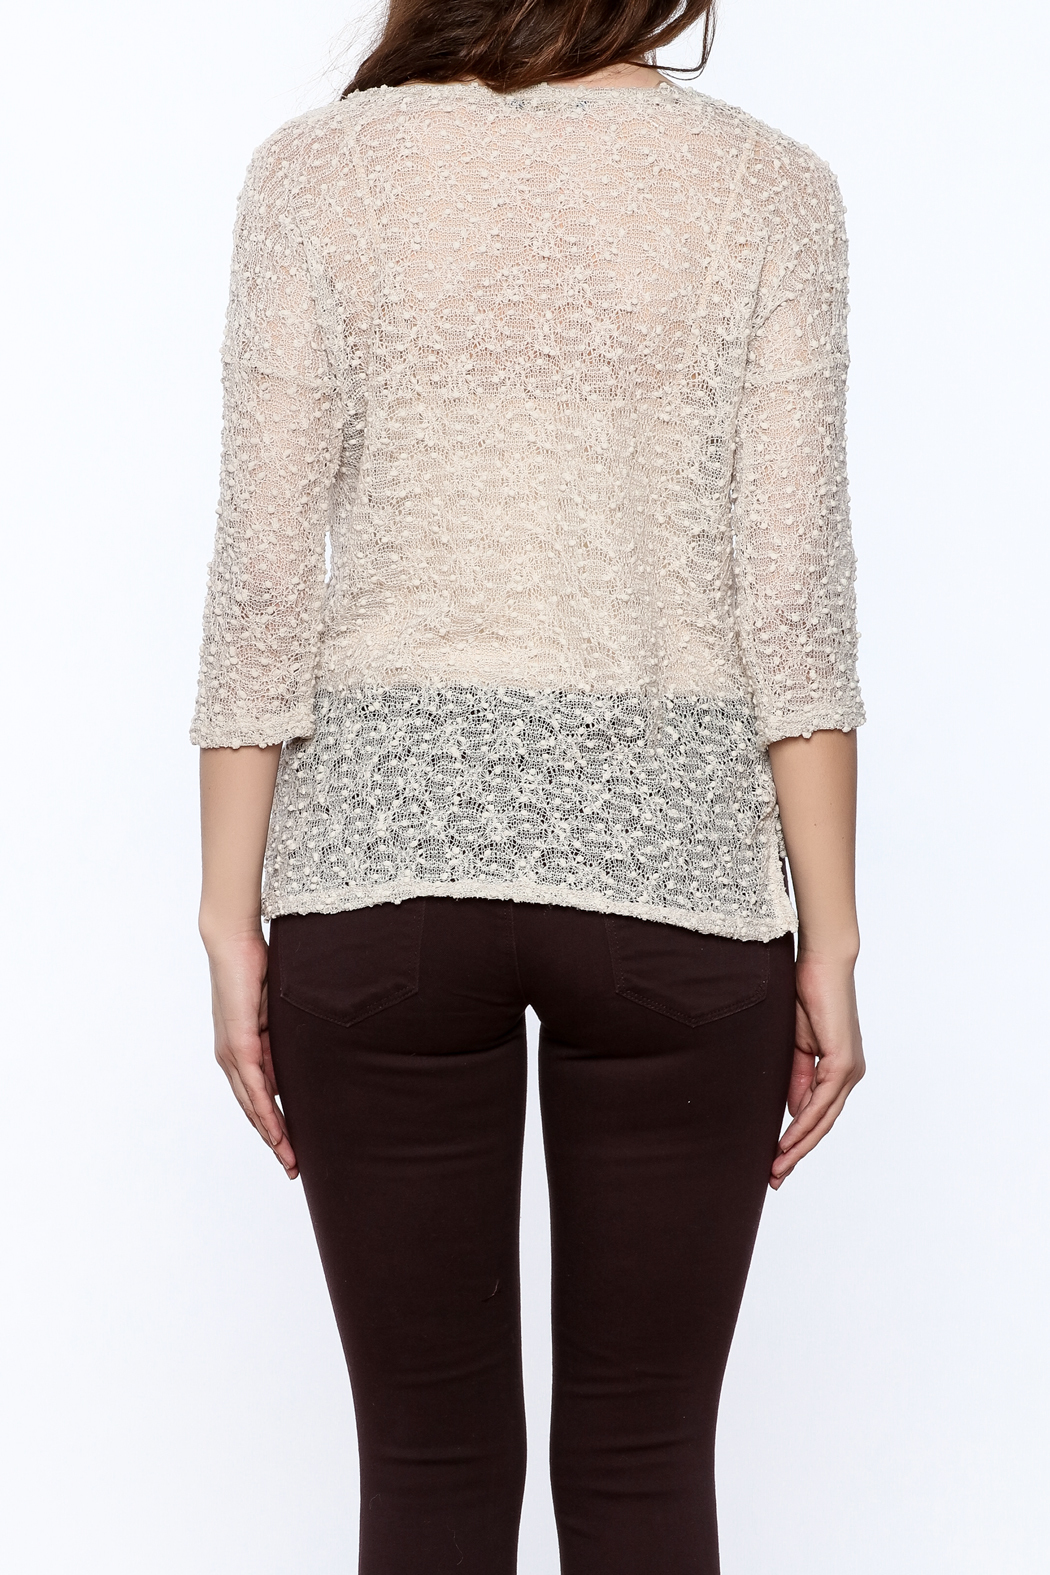 Rousseau Gritty Beige Top - Back Cropped Image